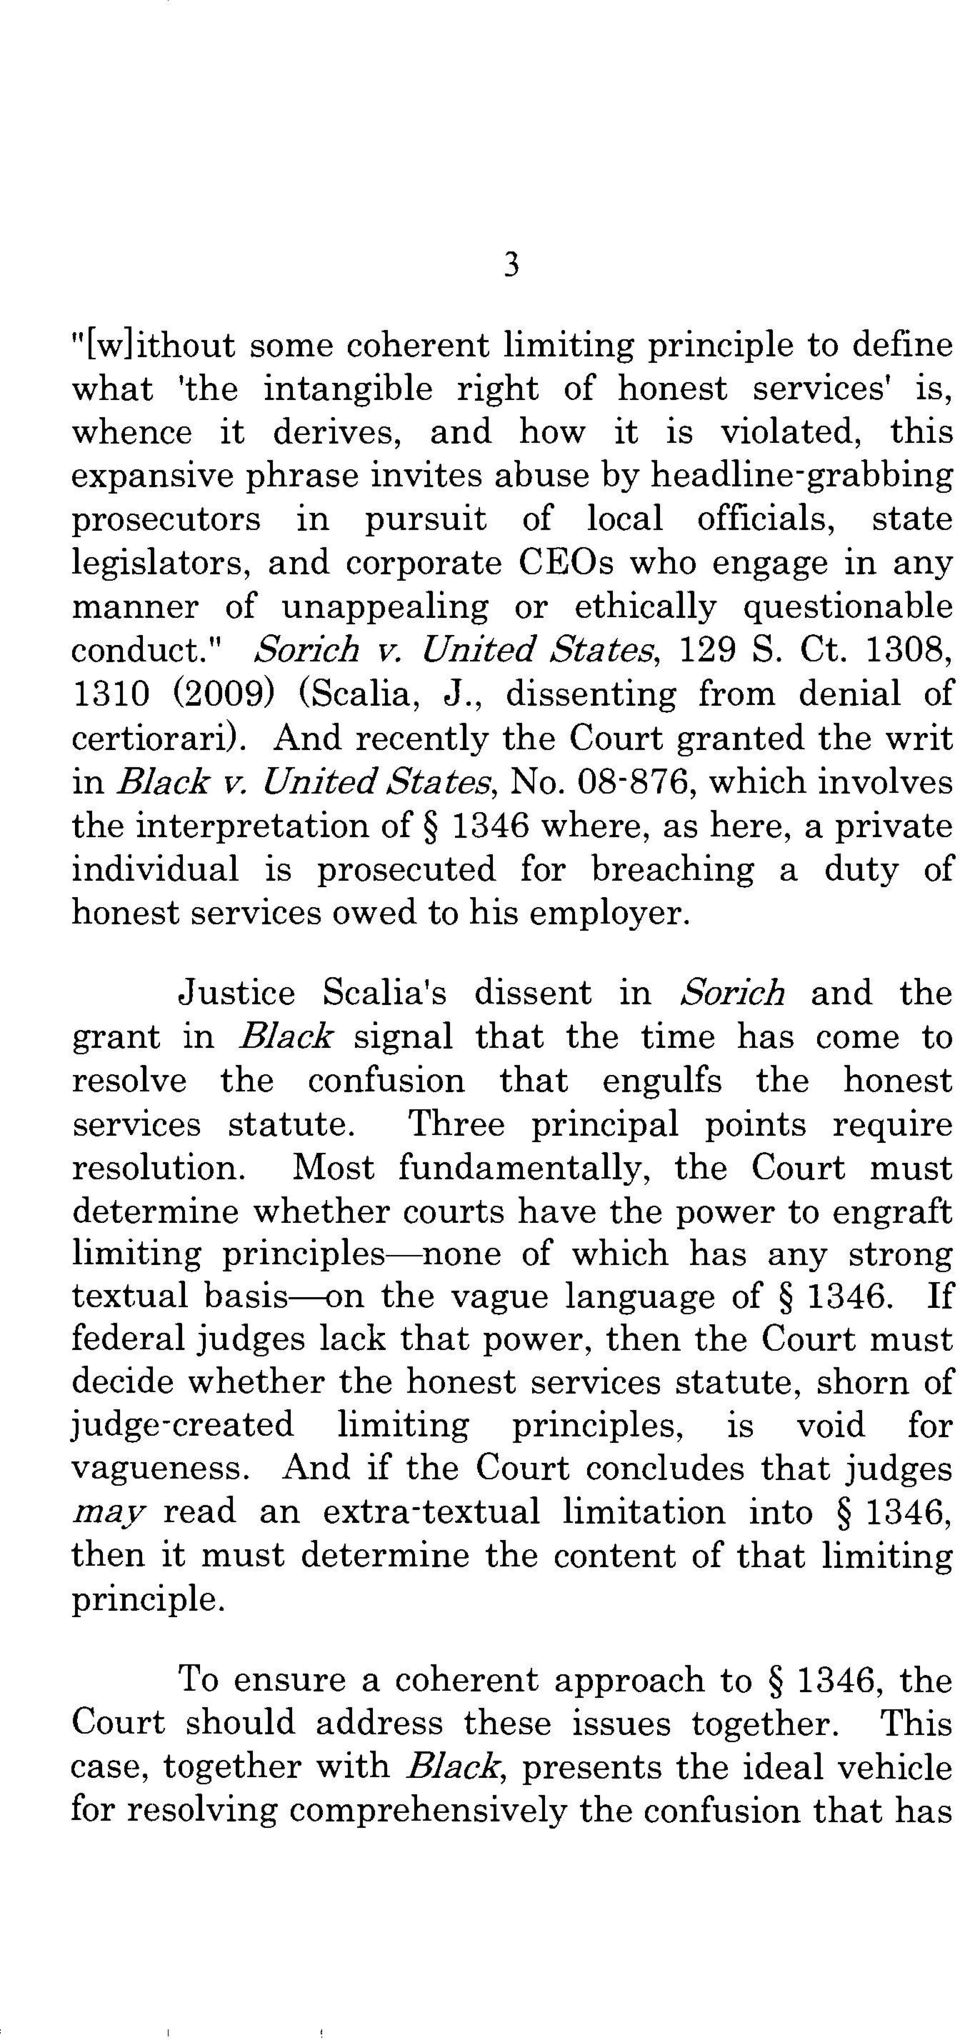 United States, 129 S. Ct. 1308, 1310 (2009) (Scalia, J., dissenting from denial of certiorari). And recently the Court granted the writ in Black v. United States, No.